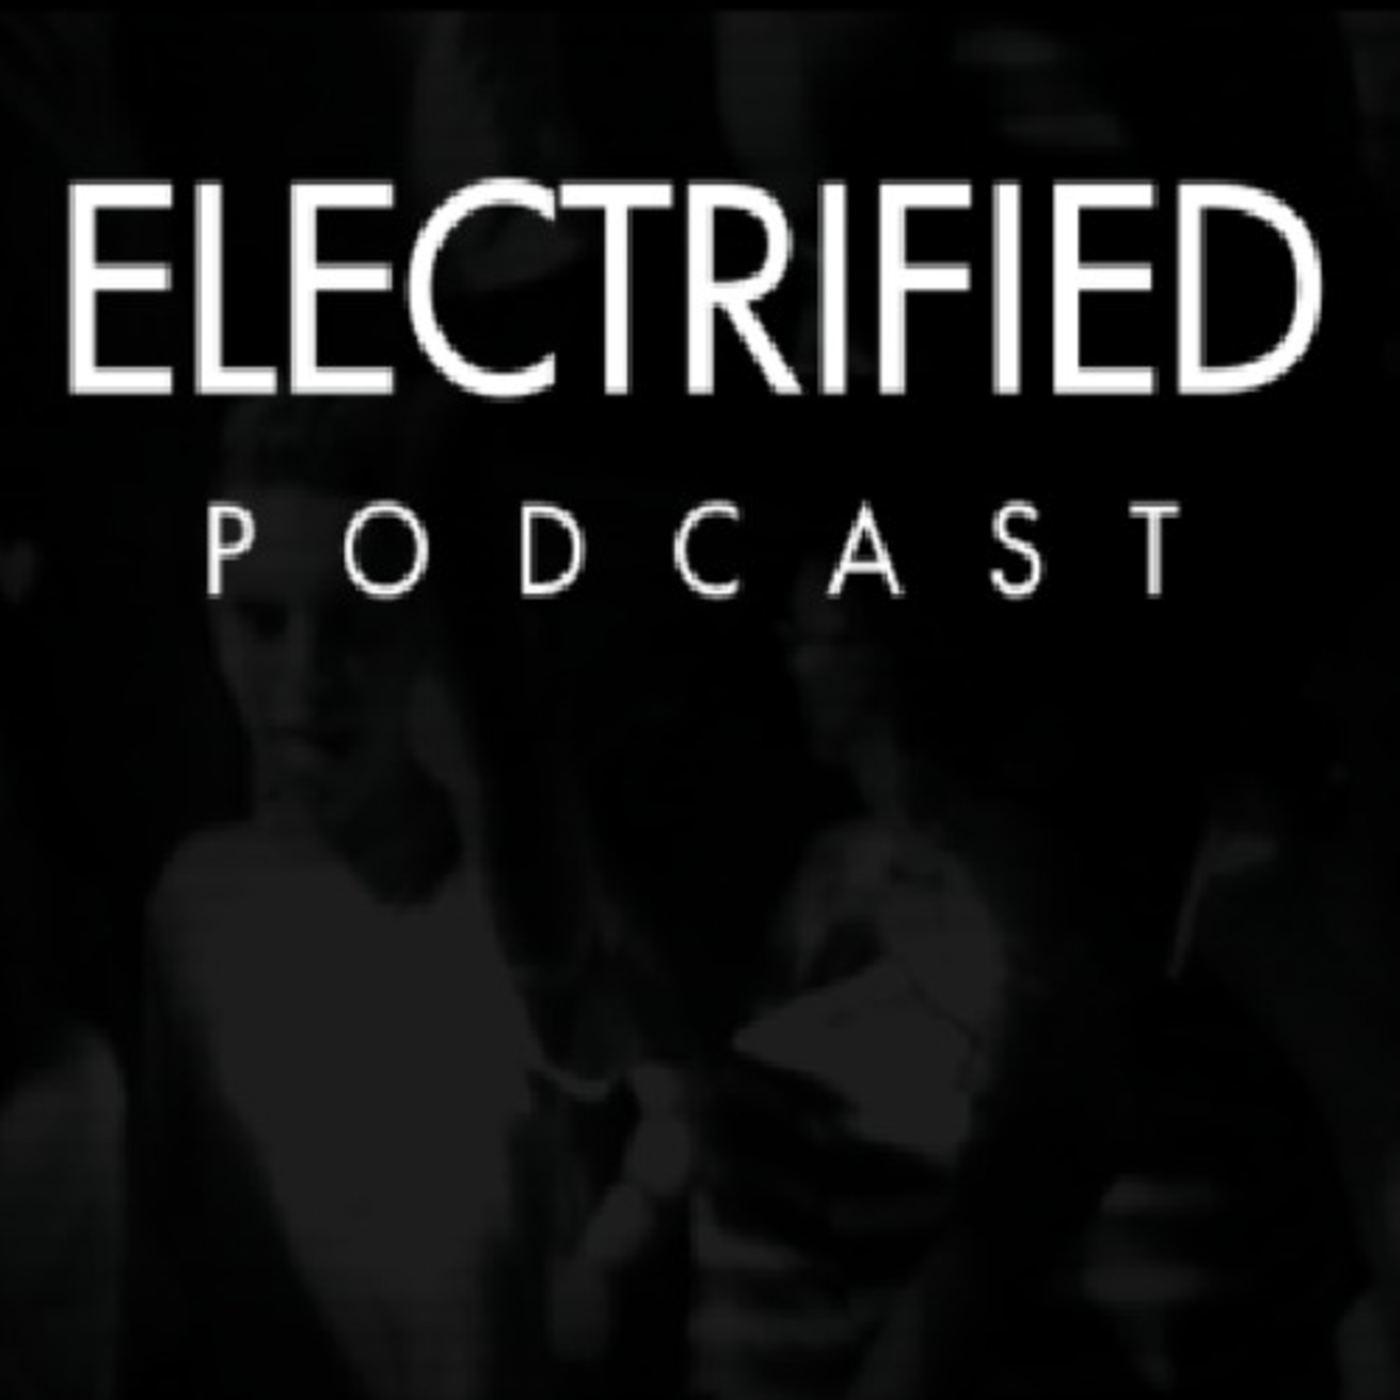 ELECTRIFIED Podcast